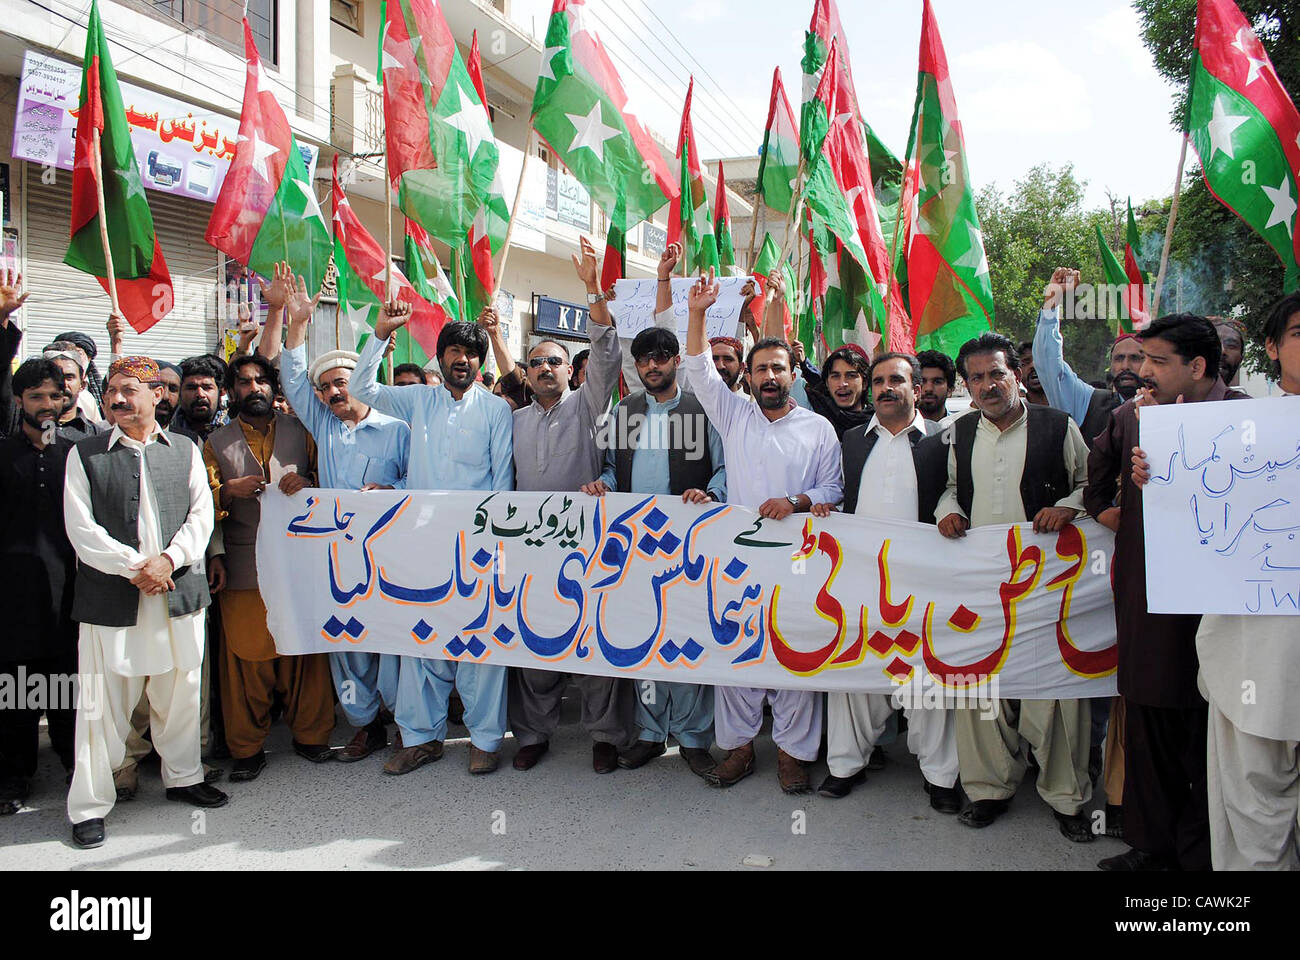 Supporters of Jamhori Watan Party (JWP) are protesting for recovery of Mukesh Kolhi Advocate during demonstration - Stock Image